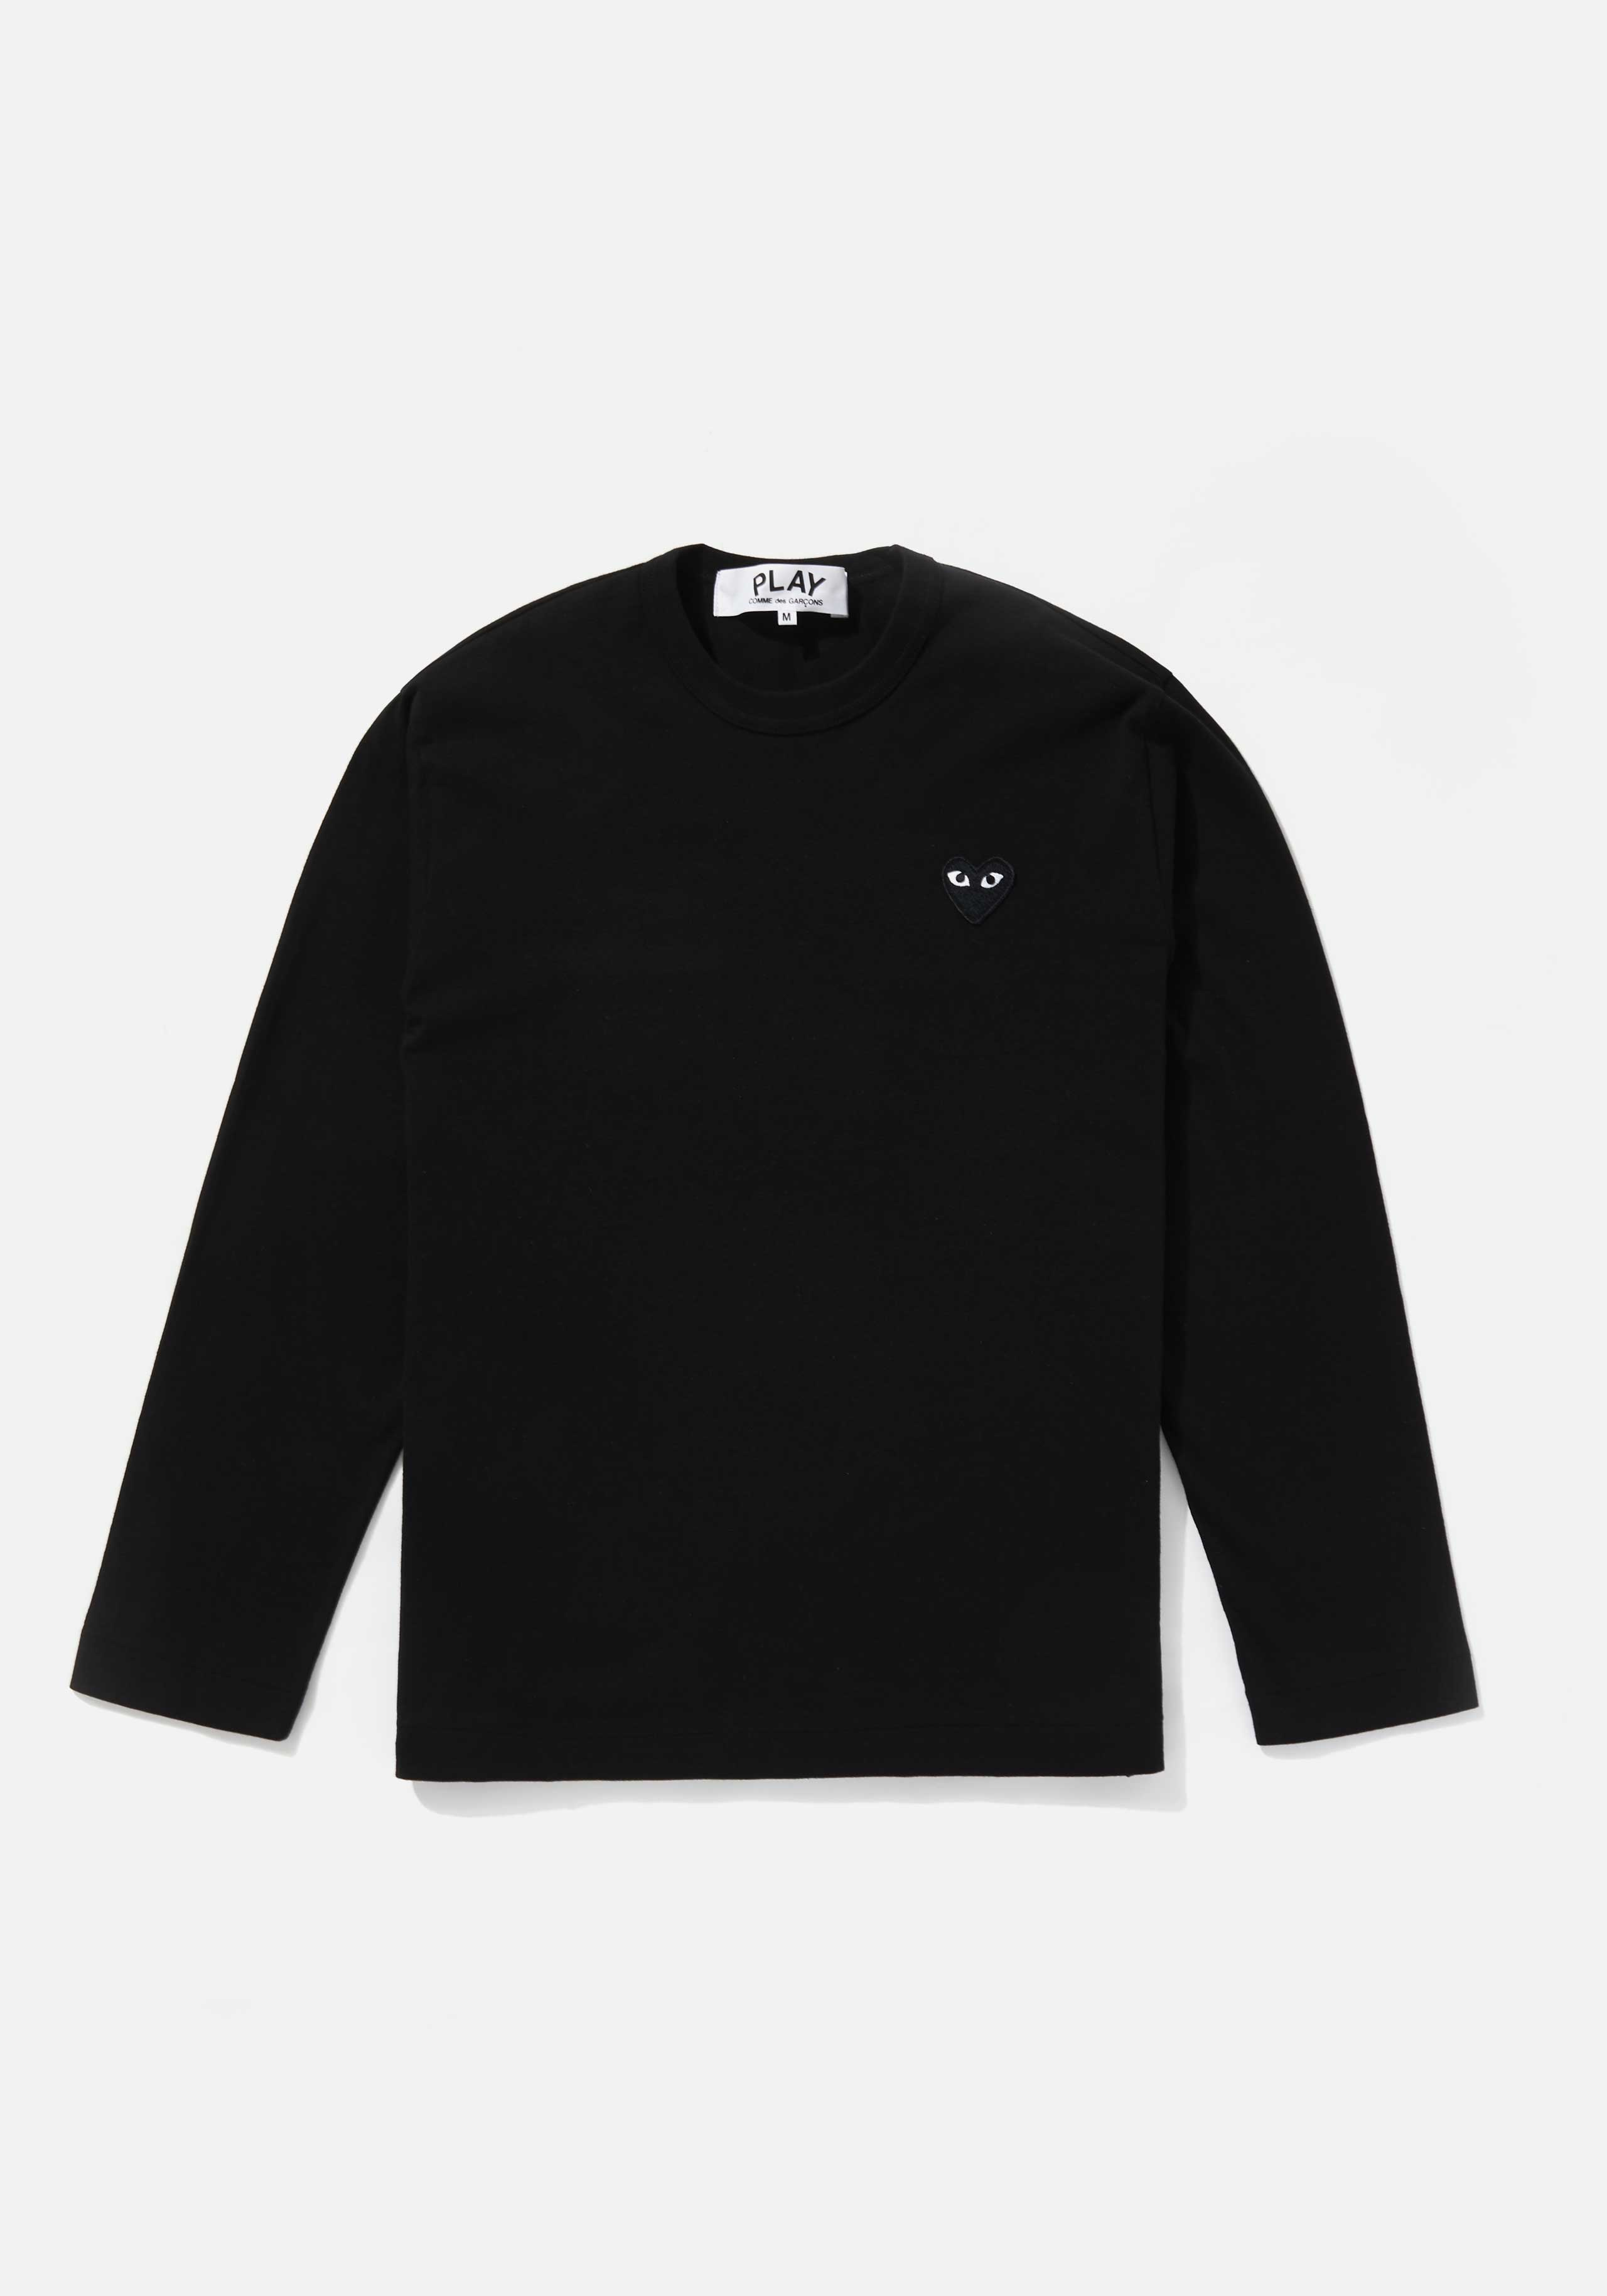 comme des garcons play black heart long sleeve 1